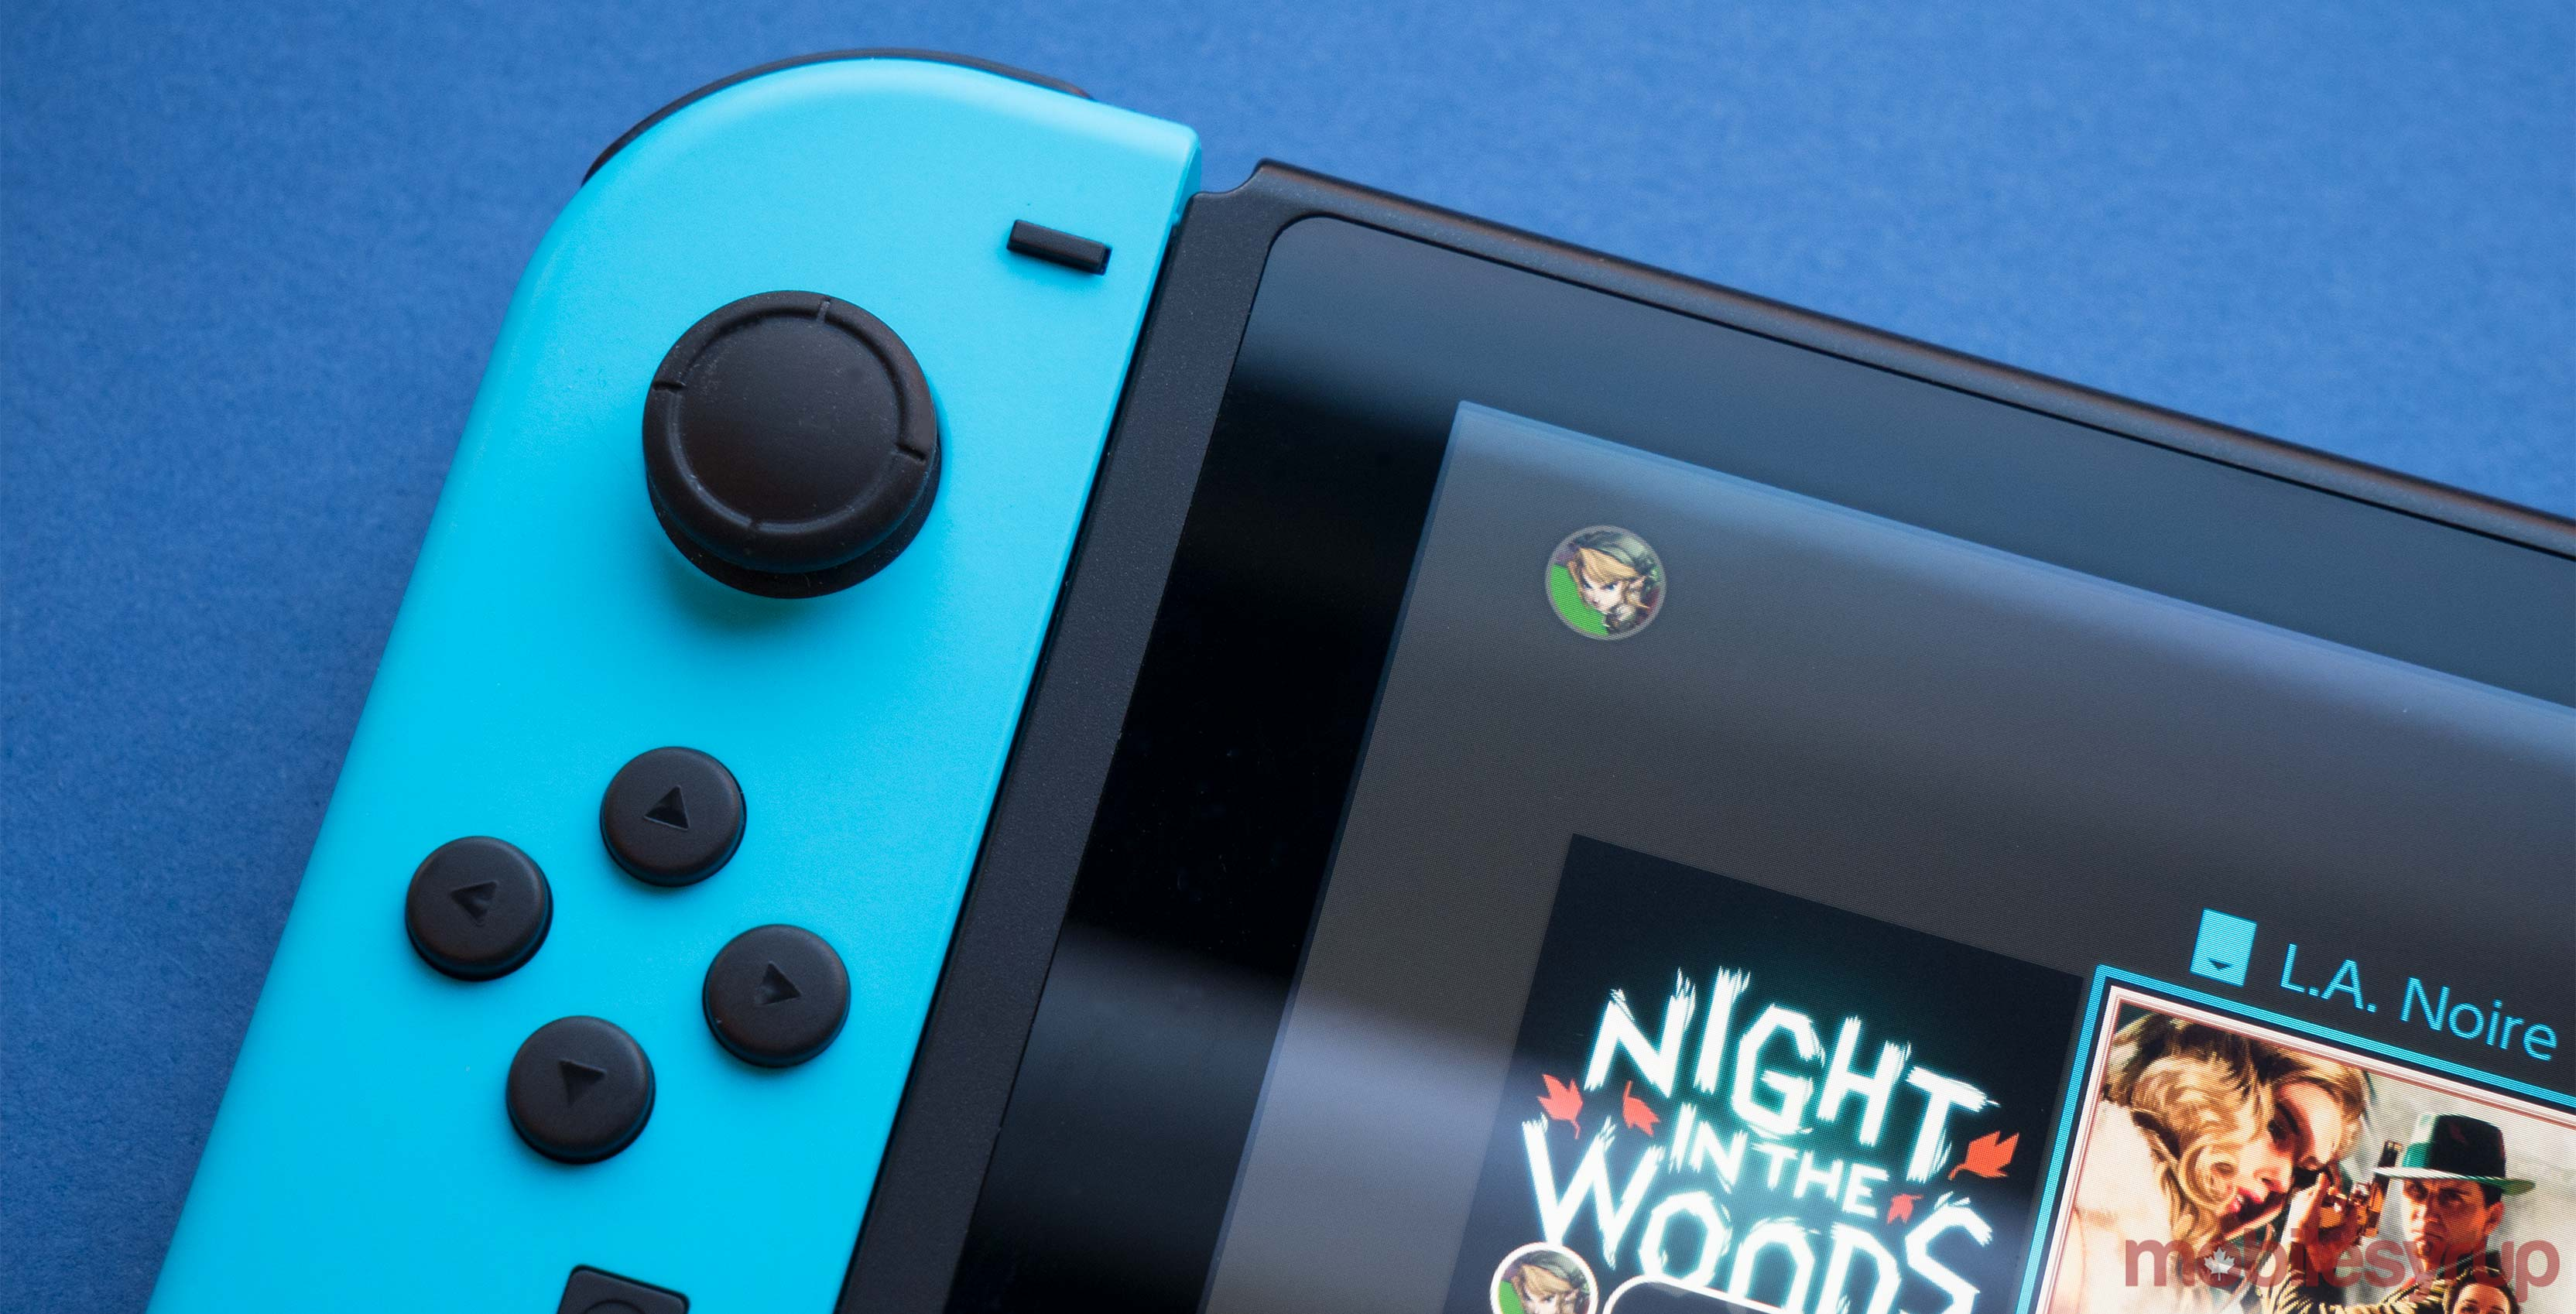 New Nintendo Switch Incoming? Hardware Revision Spotted in 5.0 Firmware